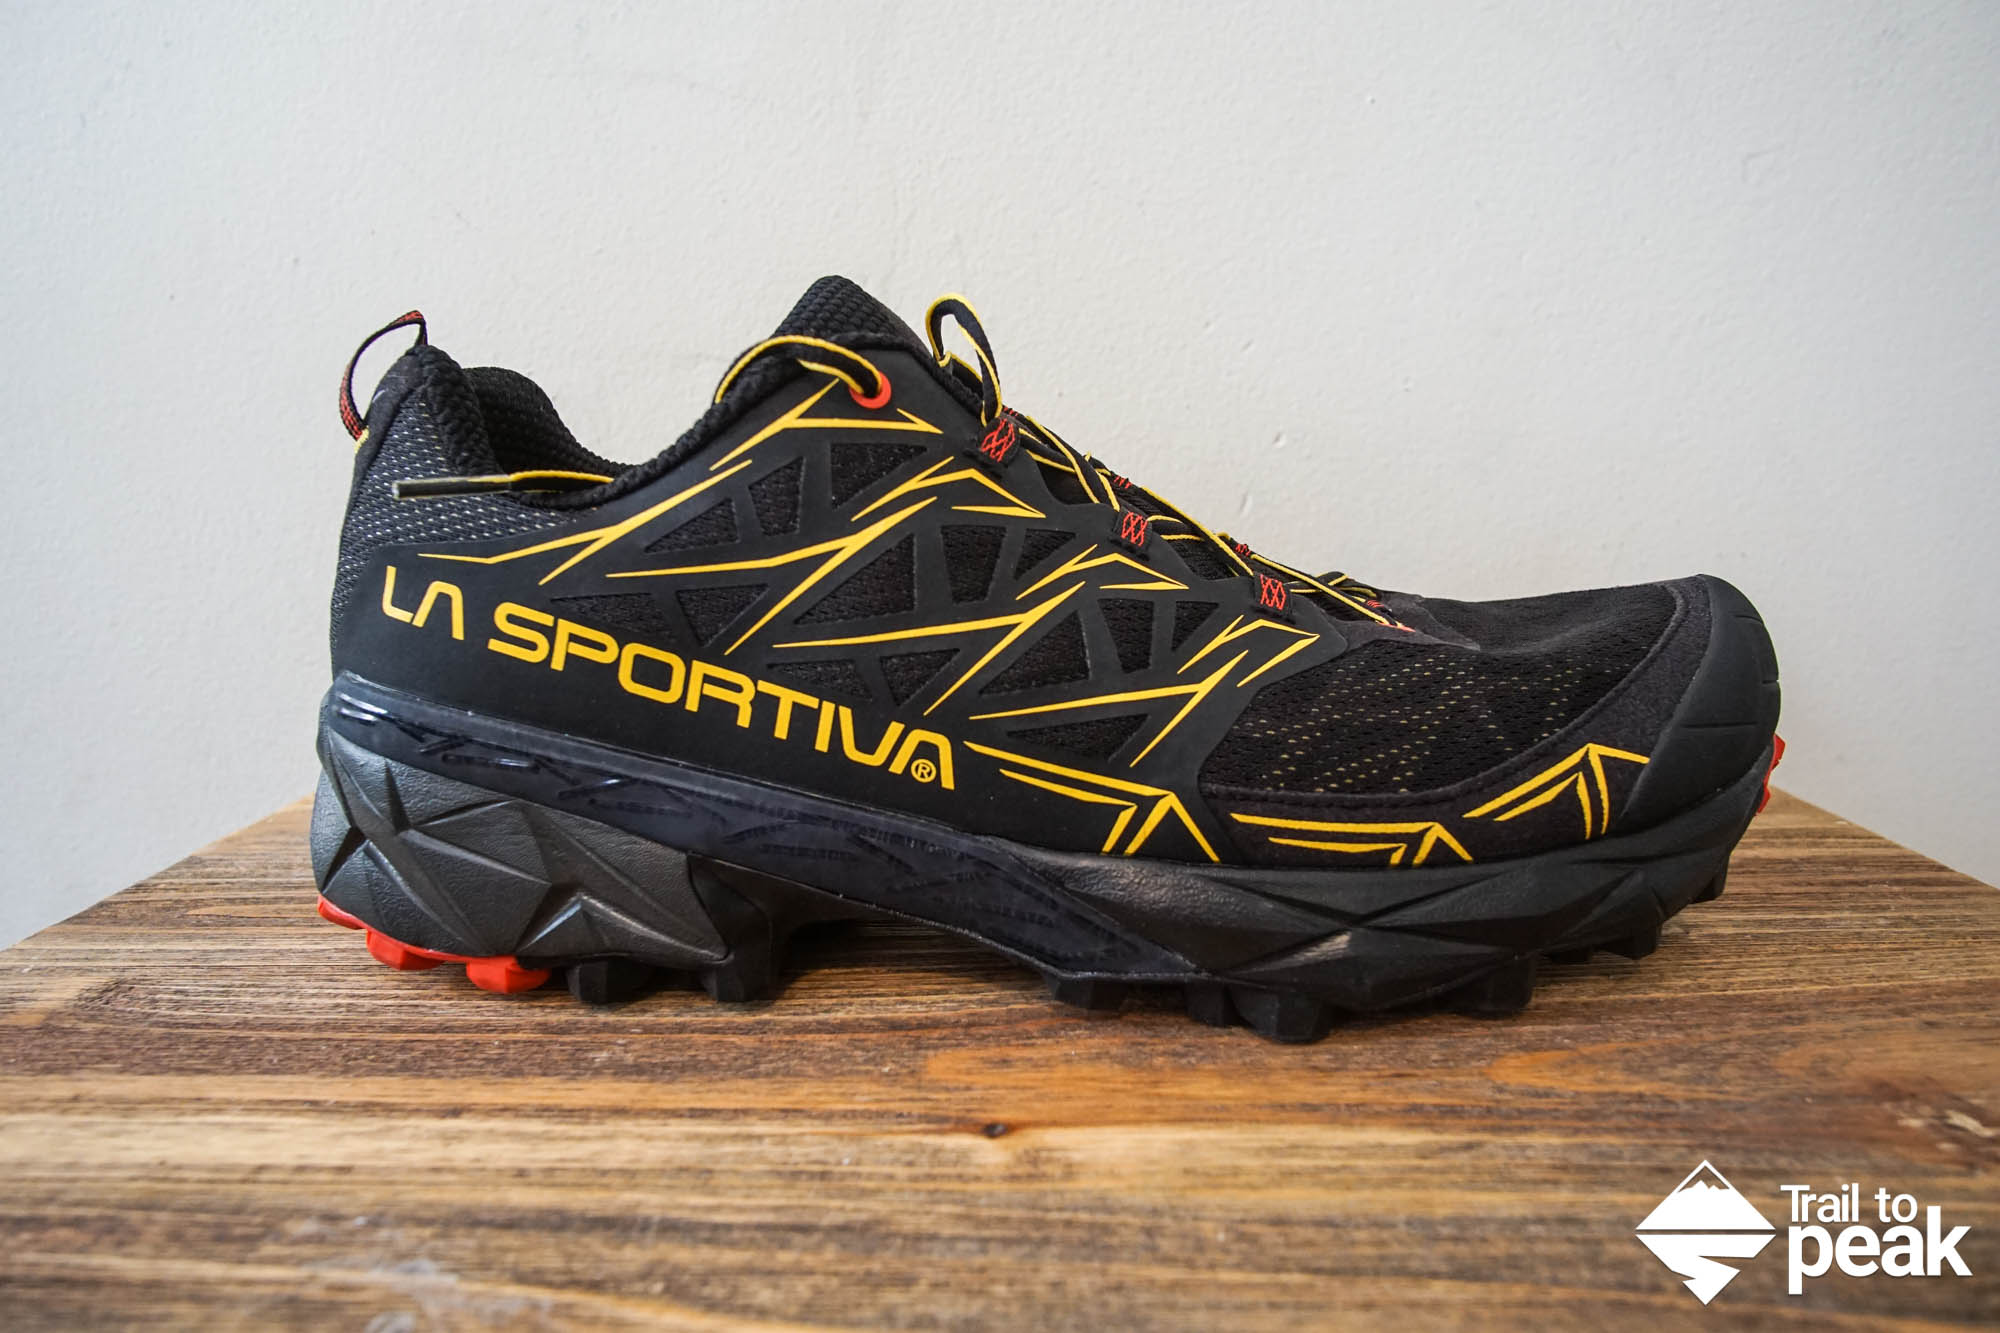 Gear Preview: La Sportiva Akyra Shoe Review Running Hiking